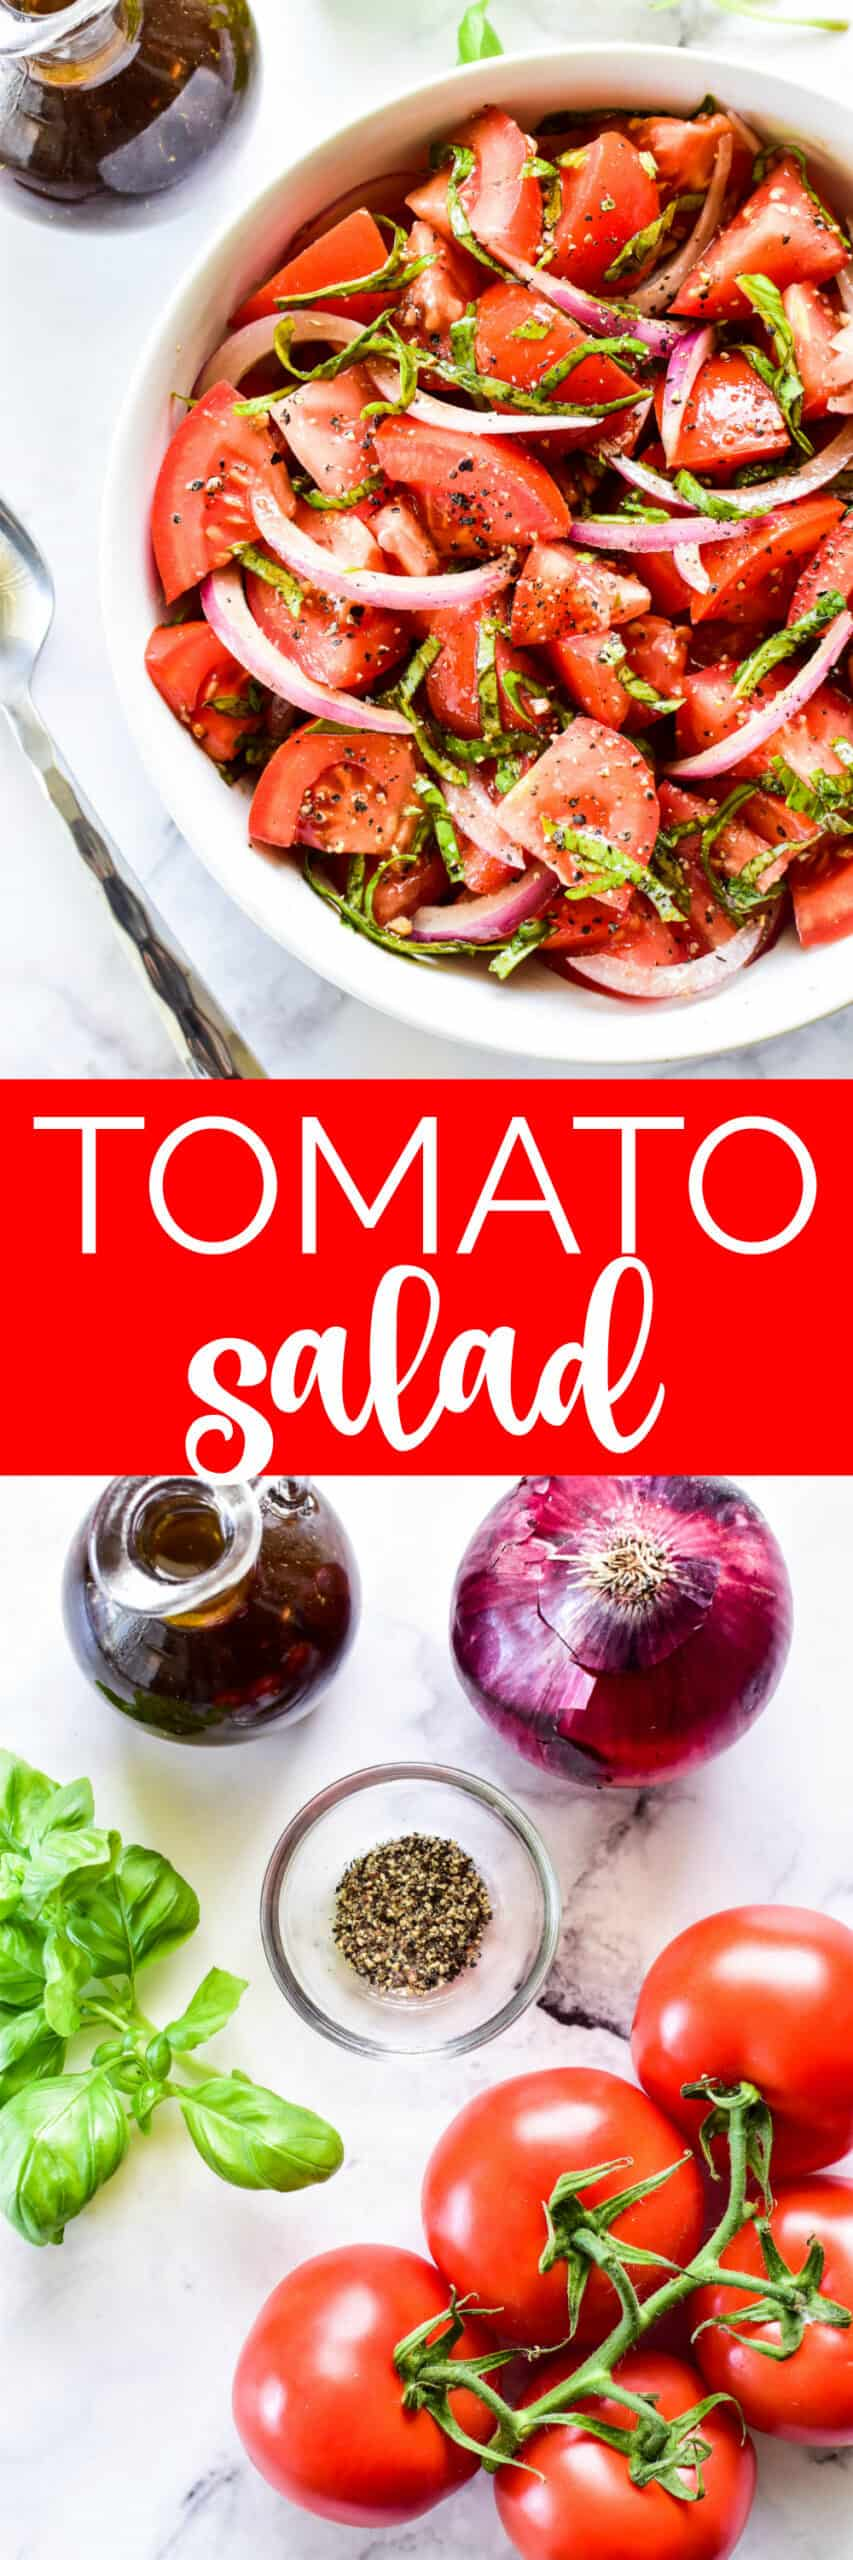 Collage image of Tomato Salad